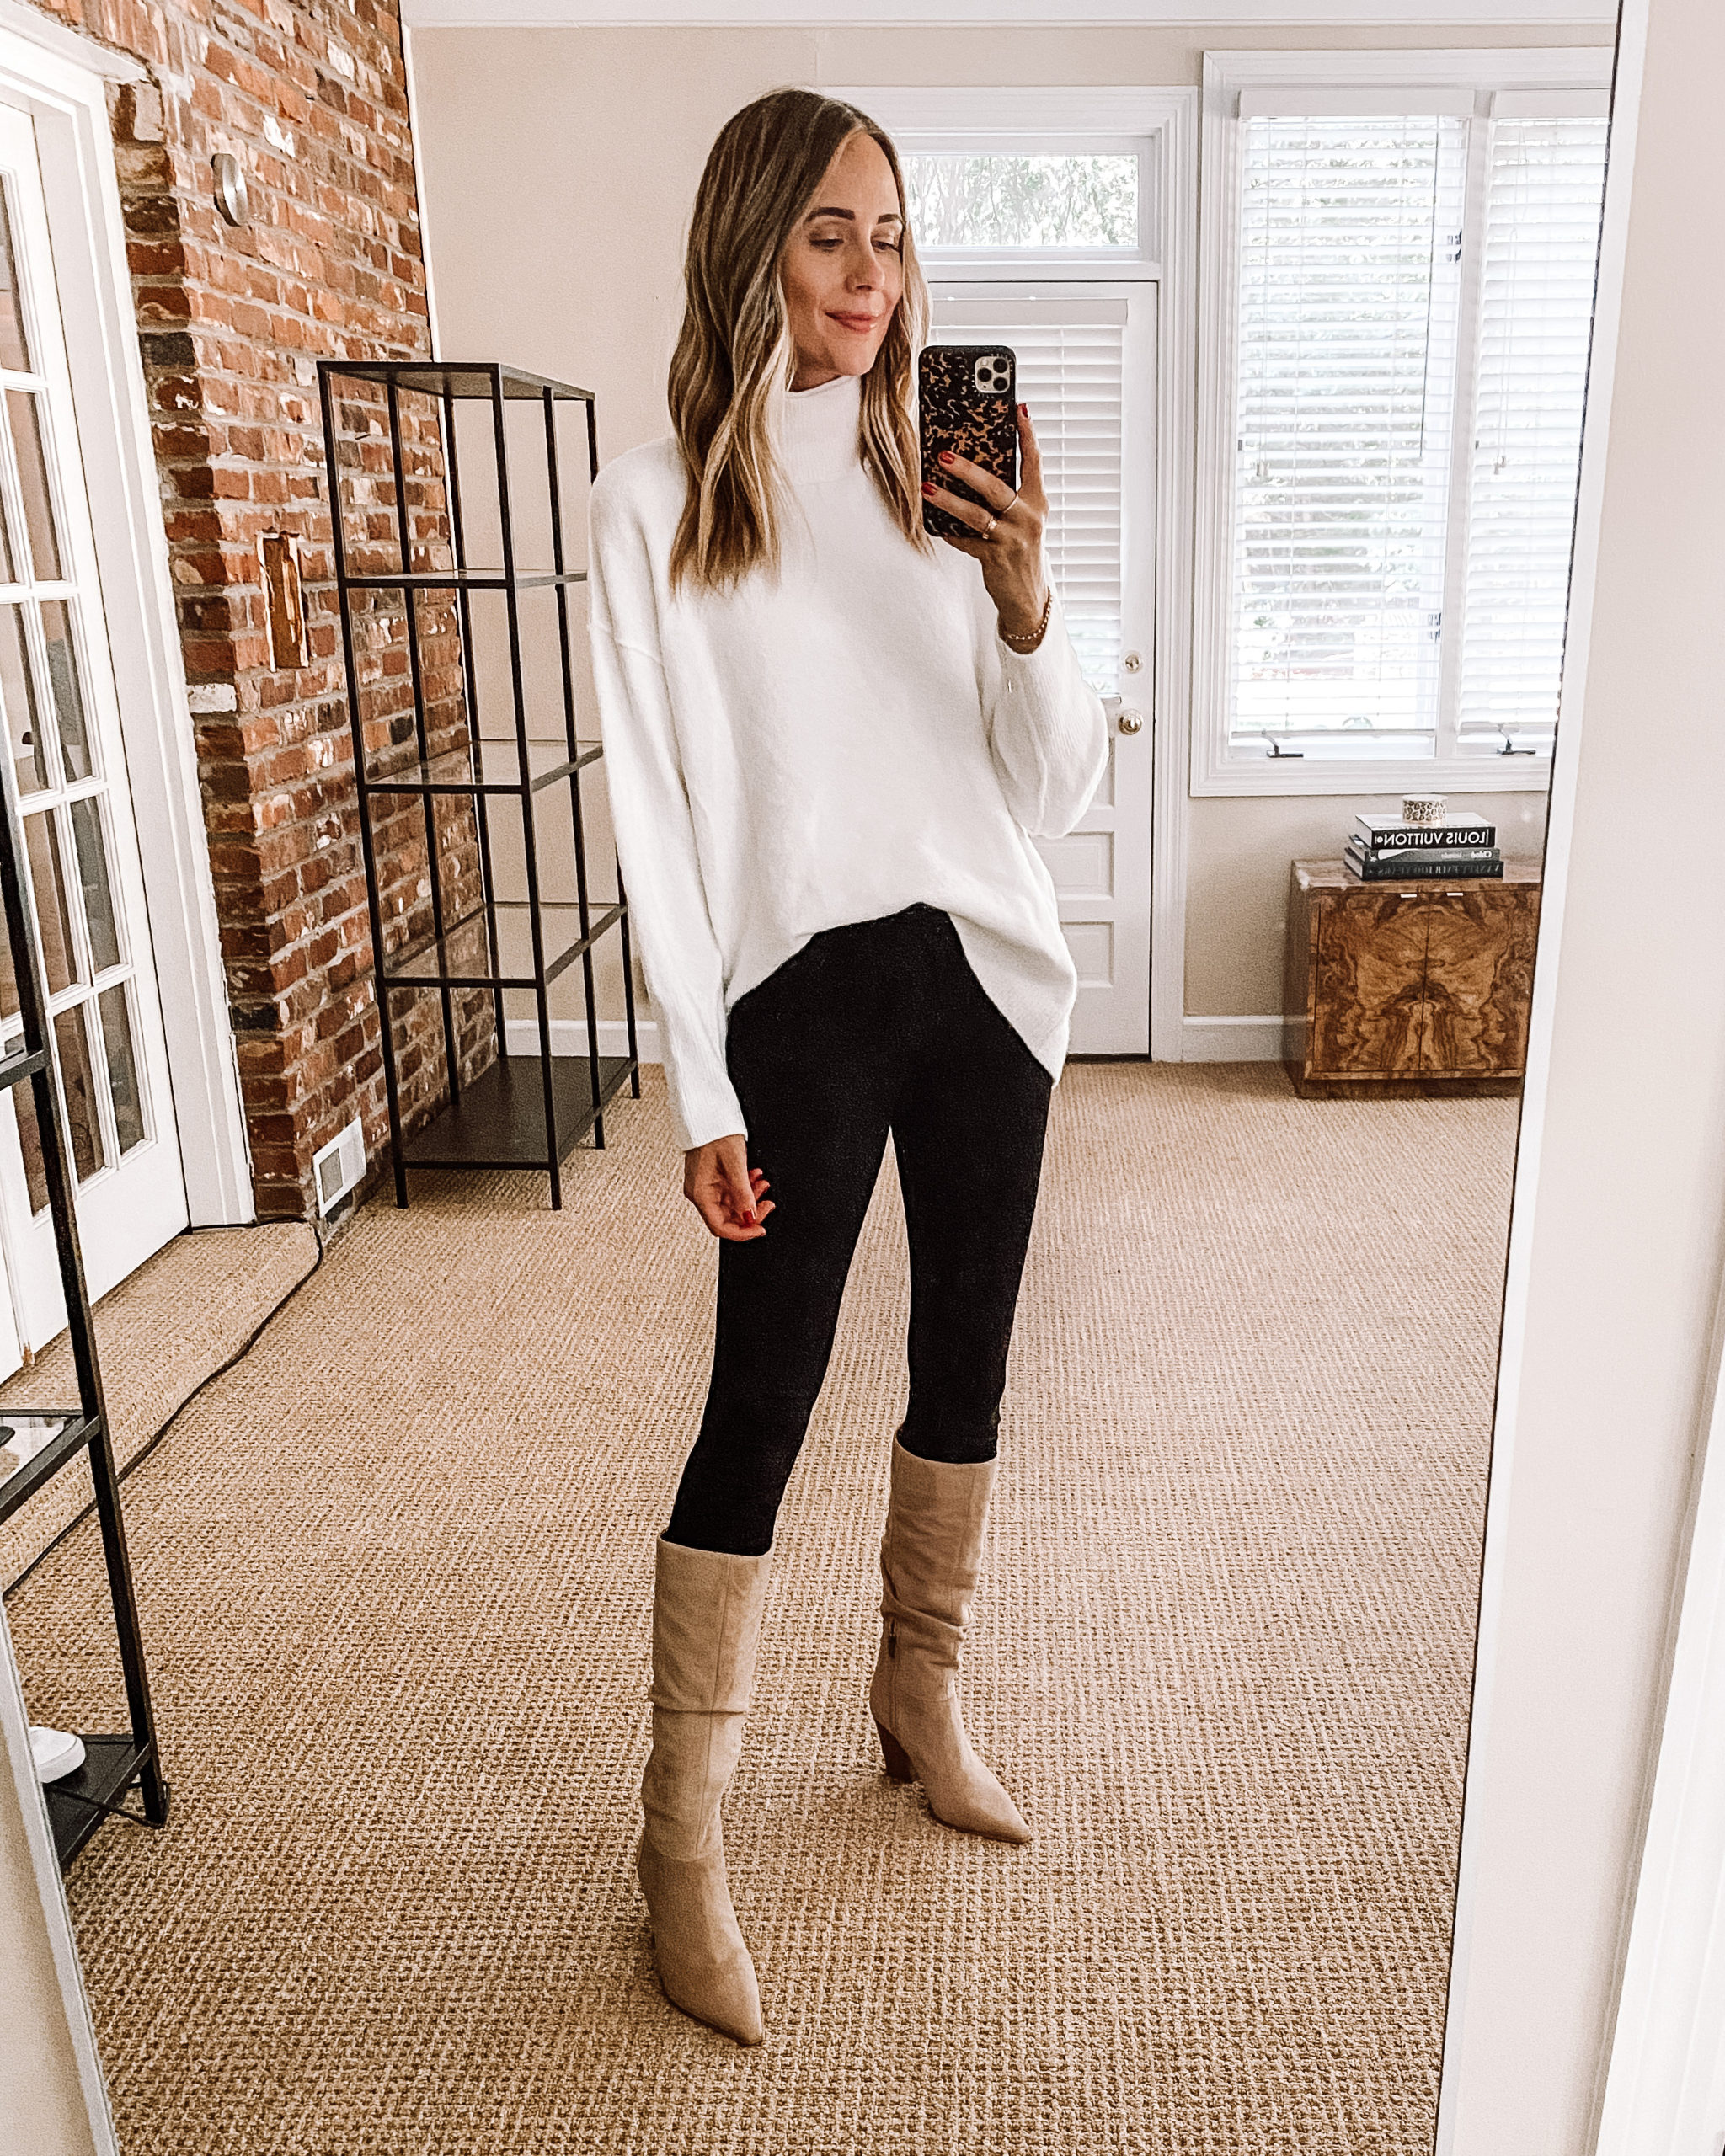 Fashion Jackson Nordstrom Anniversary Sale Free People Afterglow Mock Neck Top White Tunic Sweater Black Jeans Tan Suede Boots